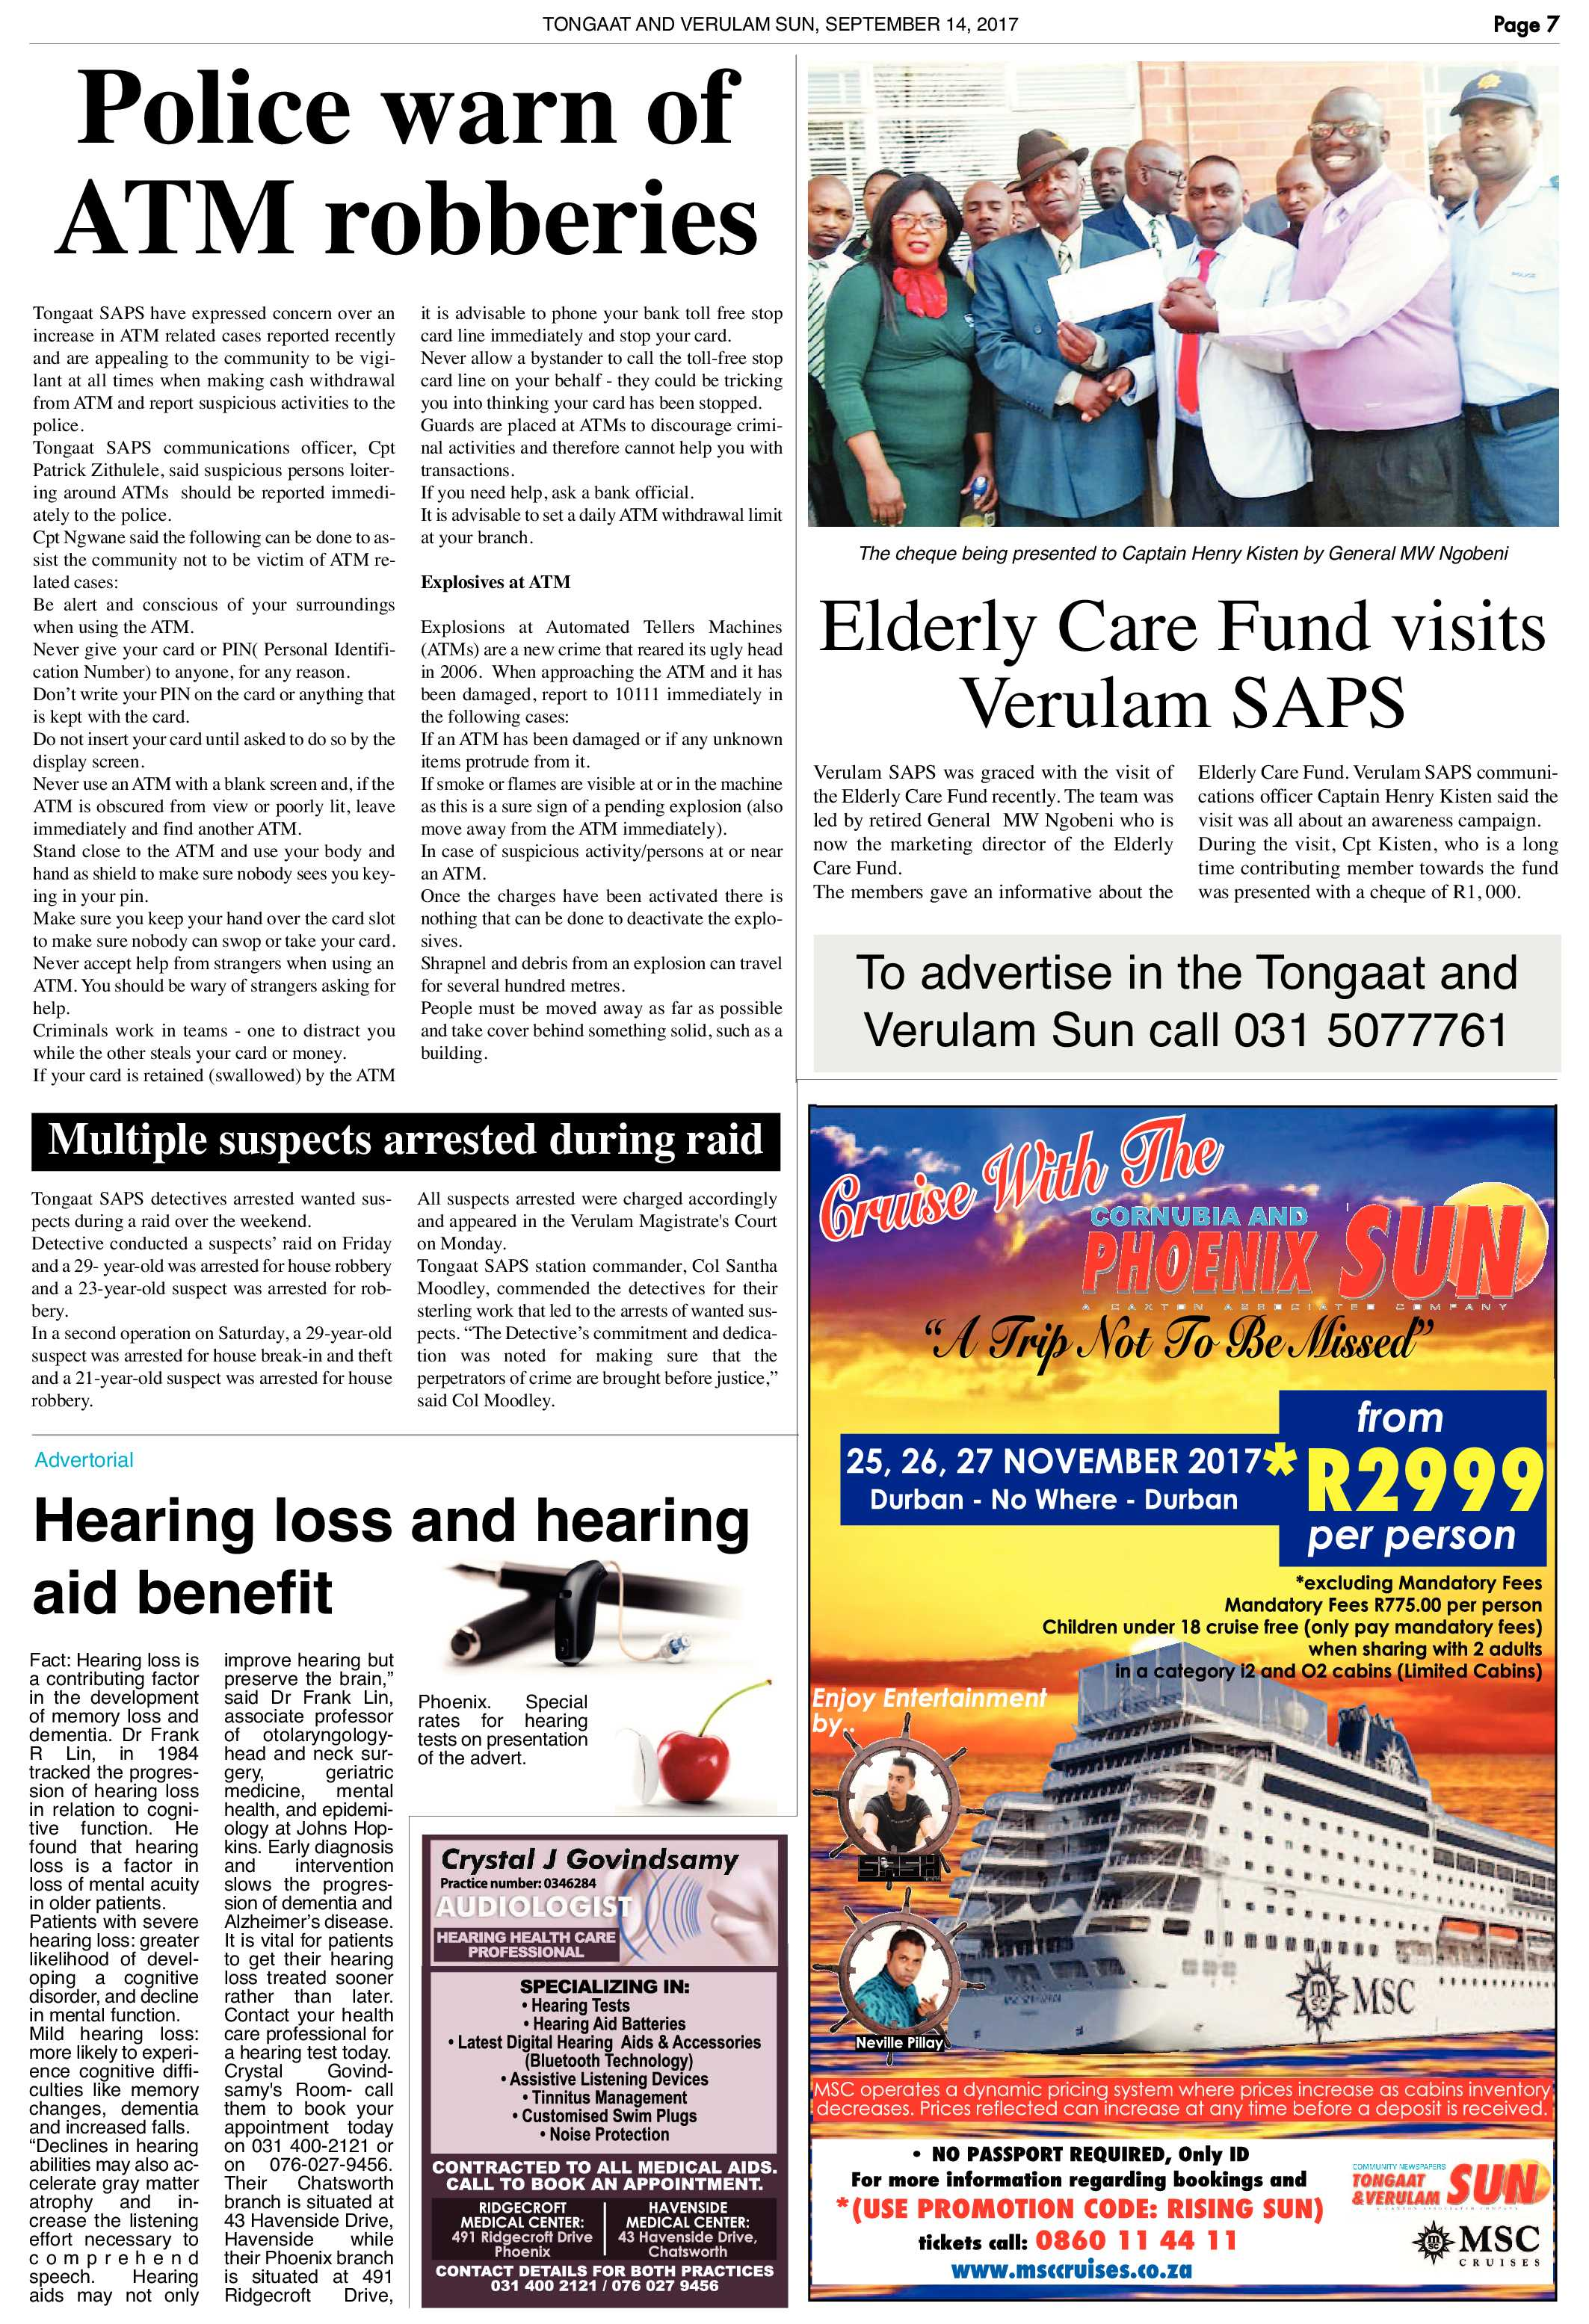 tongaat-verulam-sun-september-14-epapers-page-7